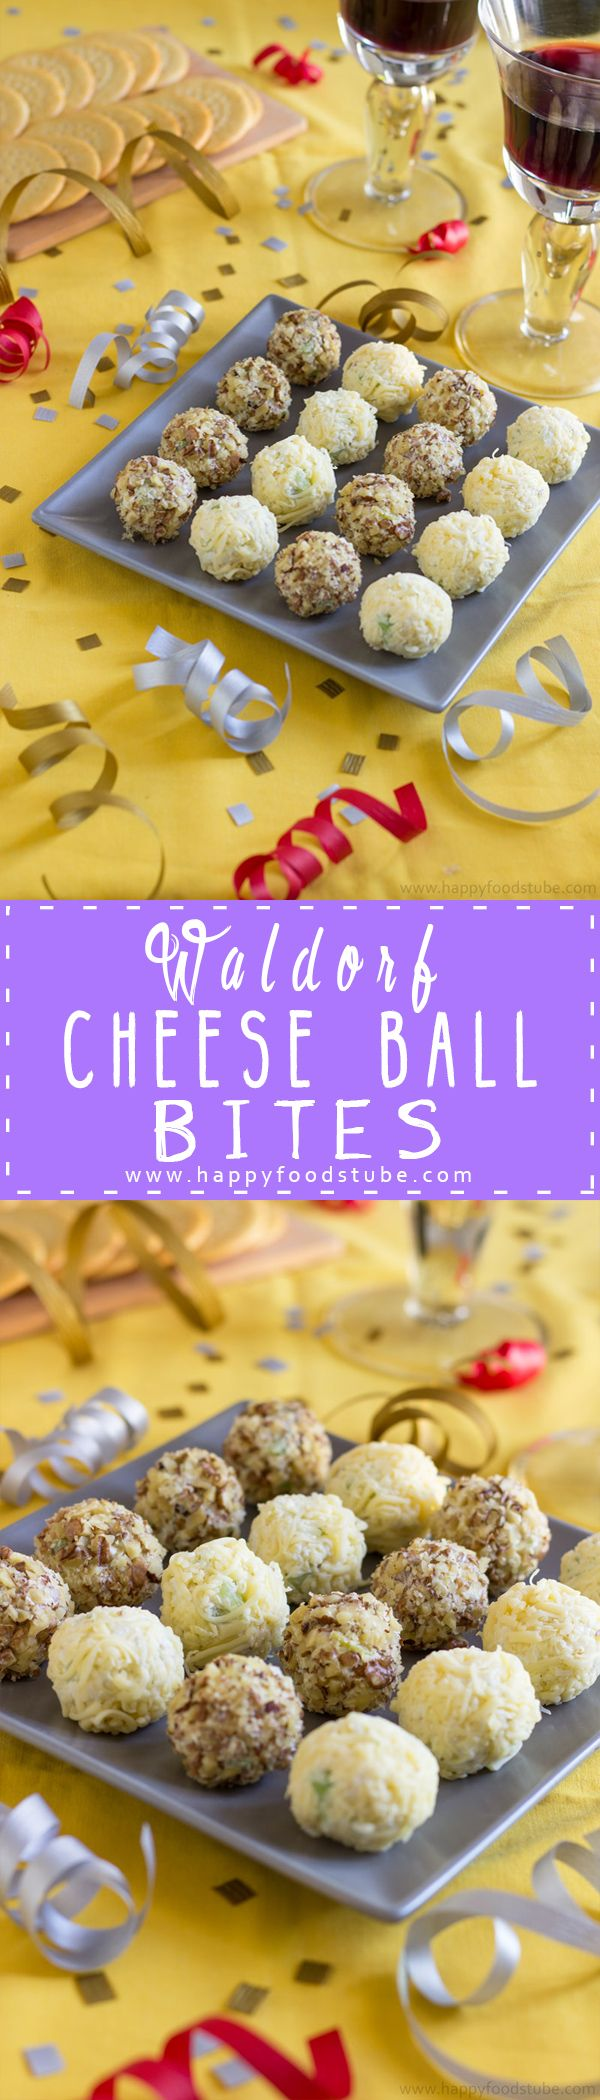 Impress your guests with these Waldorf cheese ball bites. A simple party snack idea that only takes 15 minutes to prepare and tastes like Waldorf salad! Only 5 ingredients | happyfoodstube.com